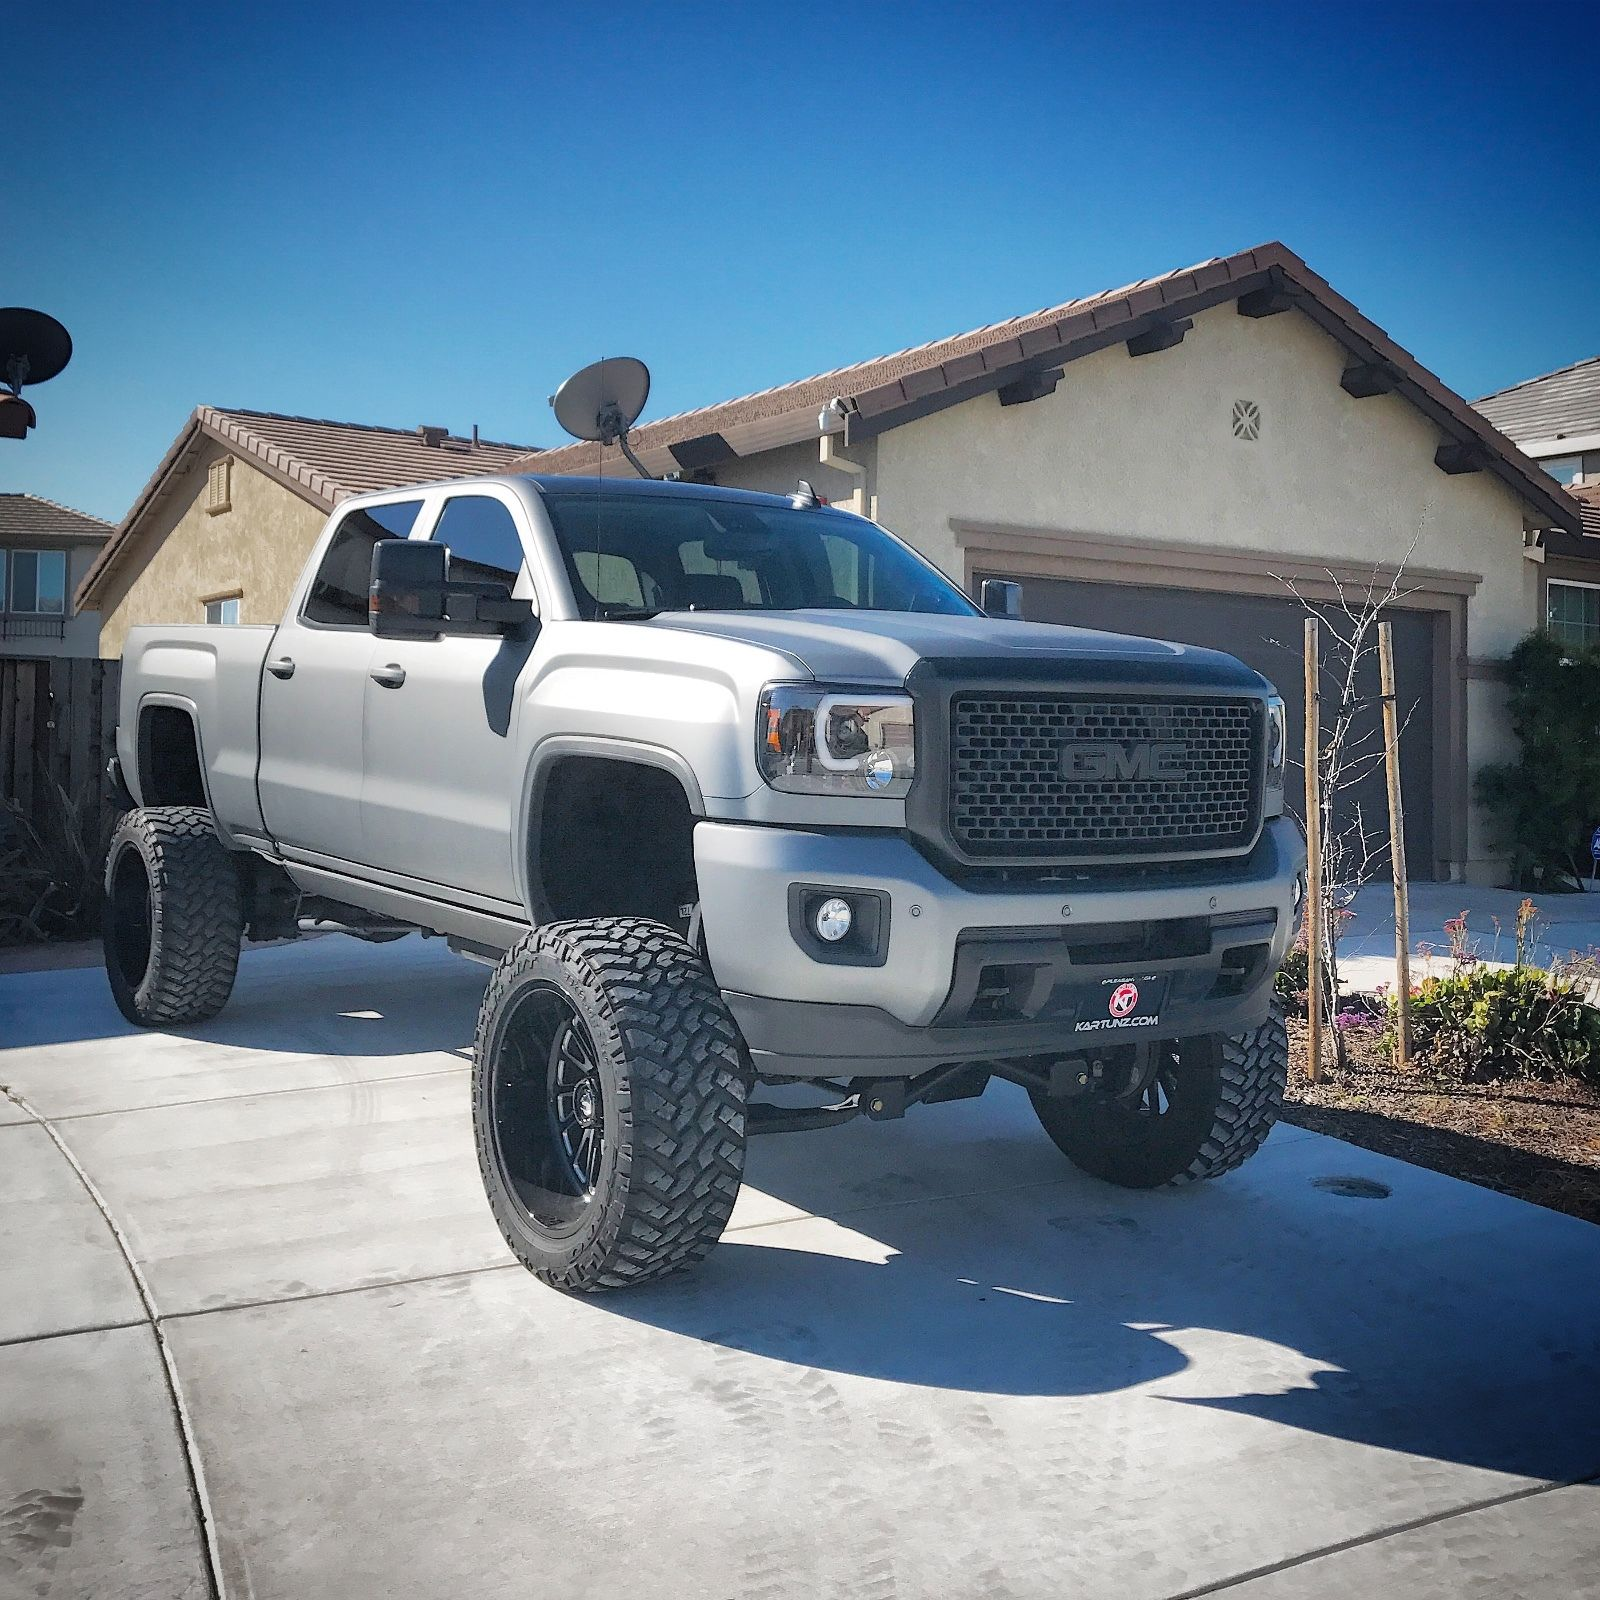 2016 Gmc Denali Hd >> Low mileage 2016 GMC Sierra 2500 Denali HD monster for sale